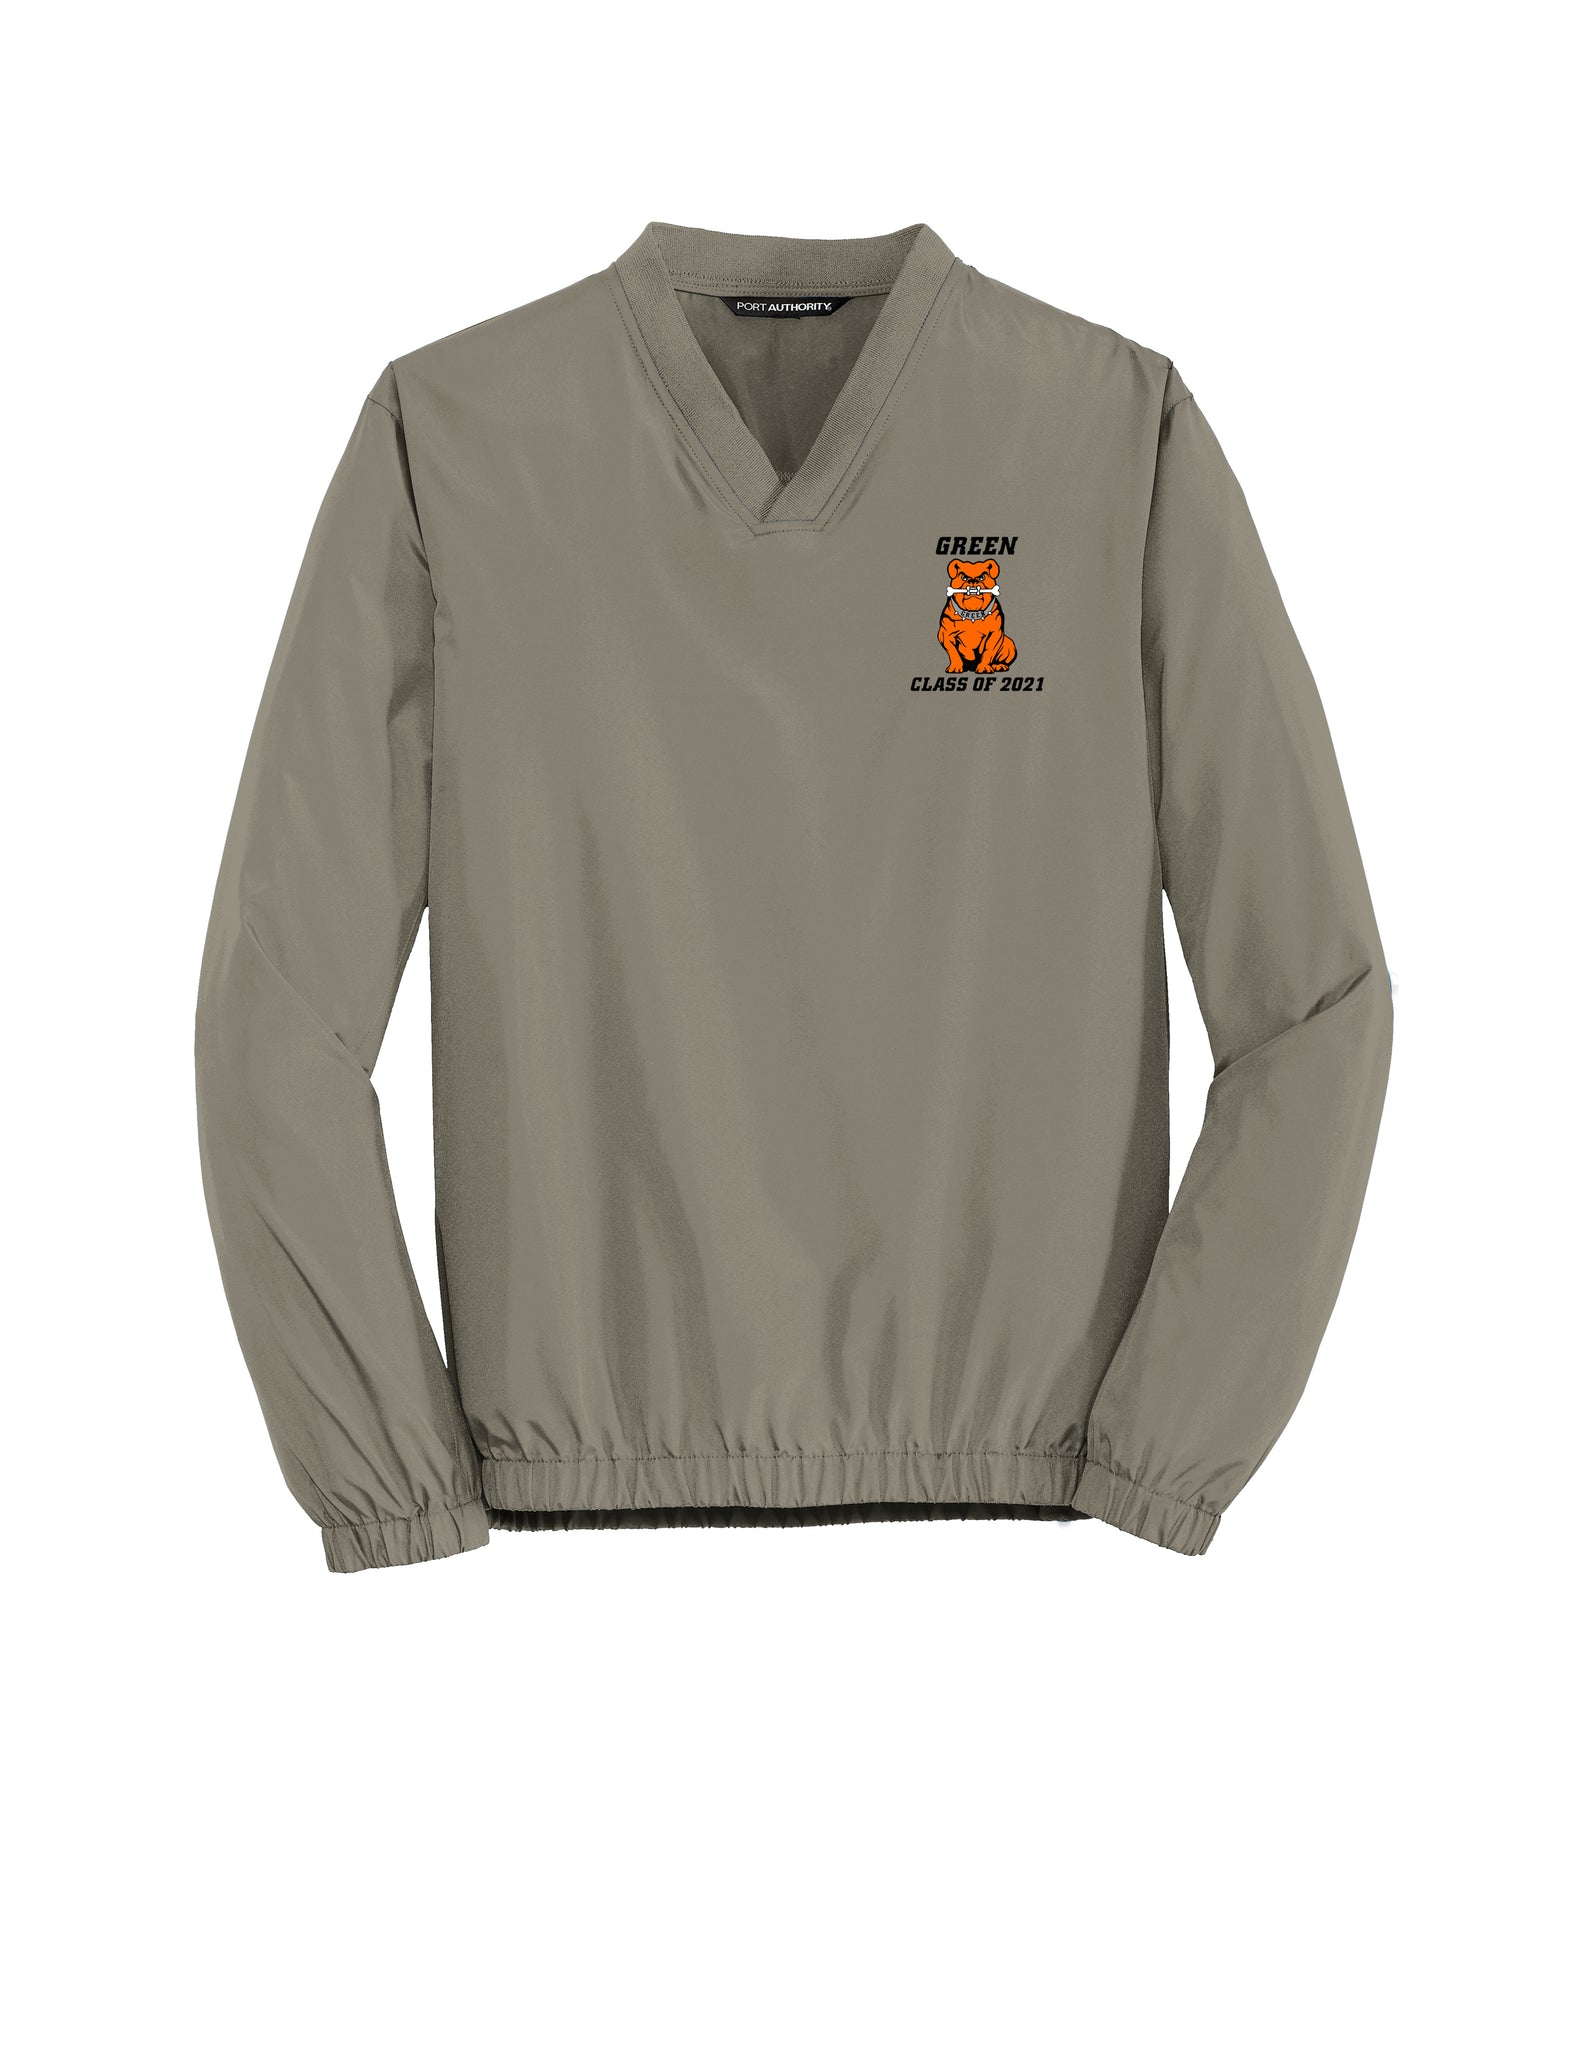 Green Class of 2021 Men's V-Neck Pullover